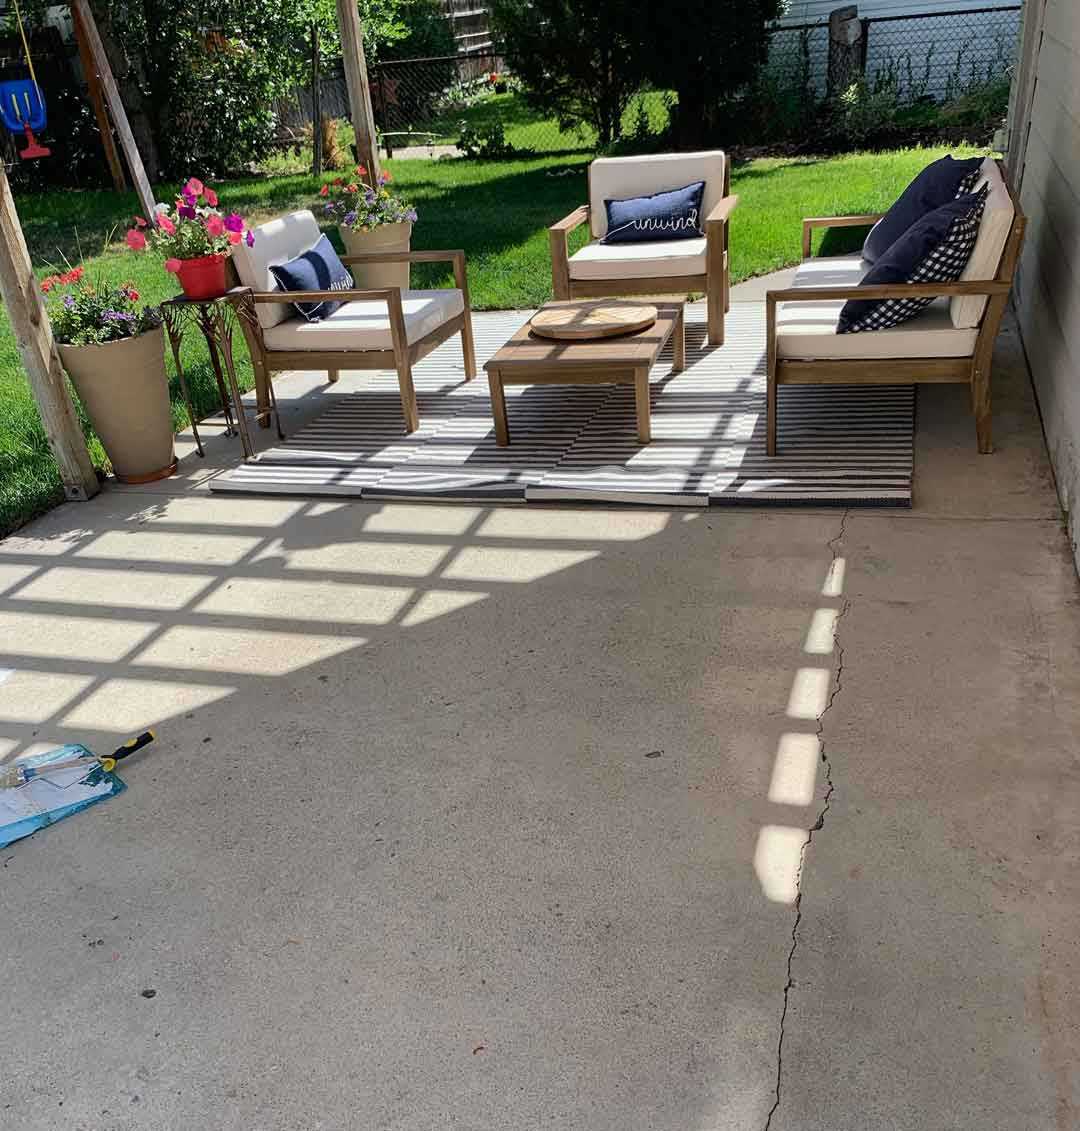 design your own concrete rug with a